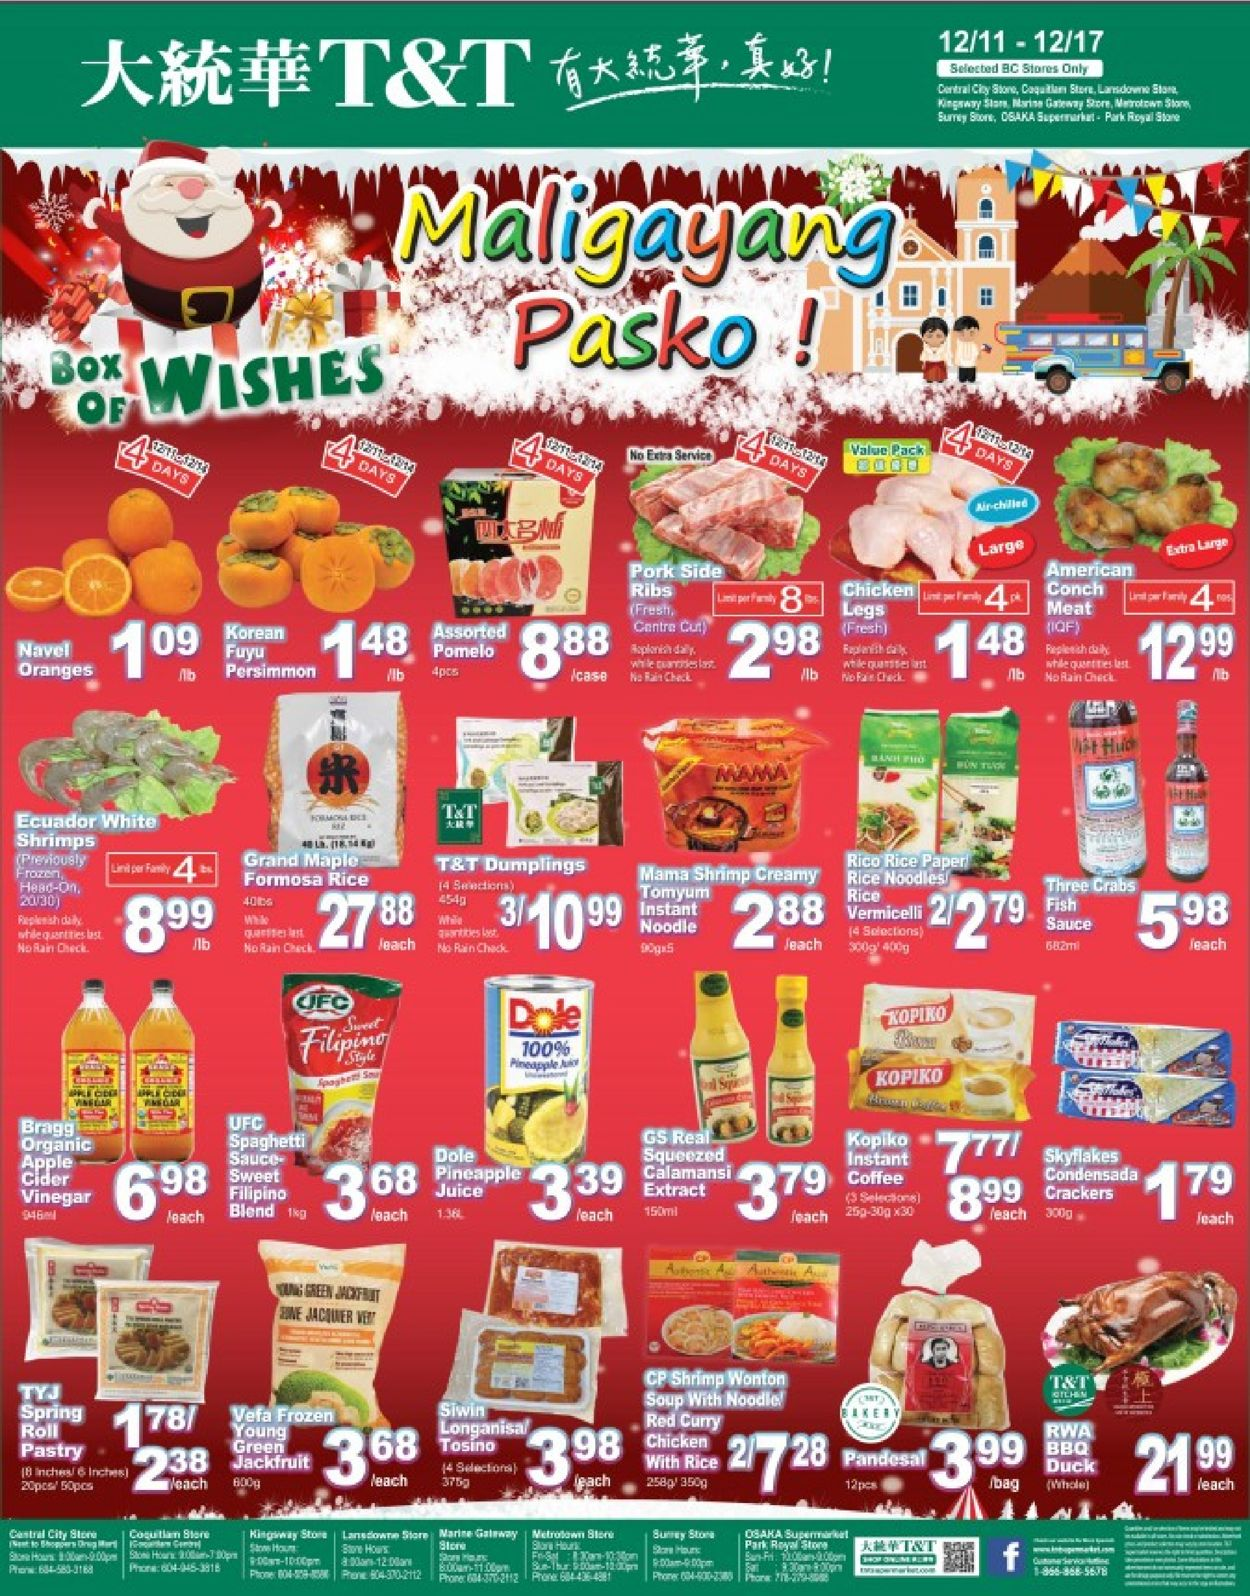 T&T Supermarket Christmas 2020 - British Columbia Flyer - 12/11-12/17/2020 (Page 4)